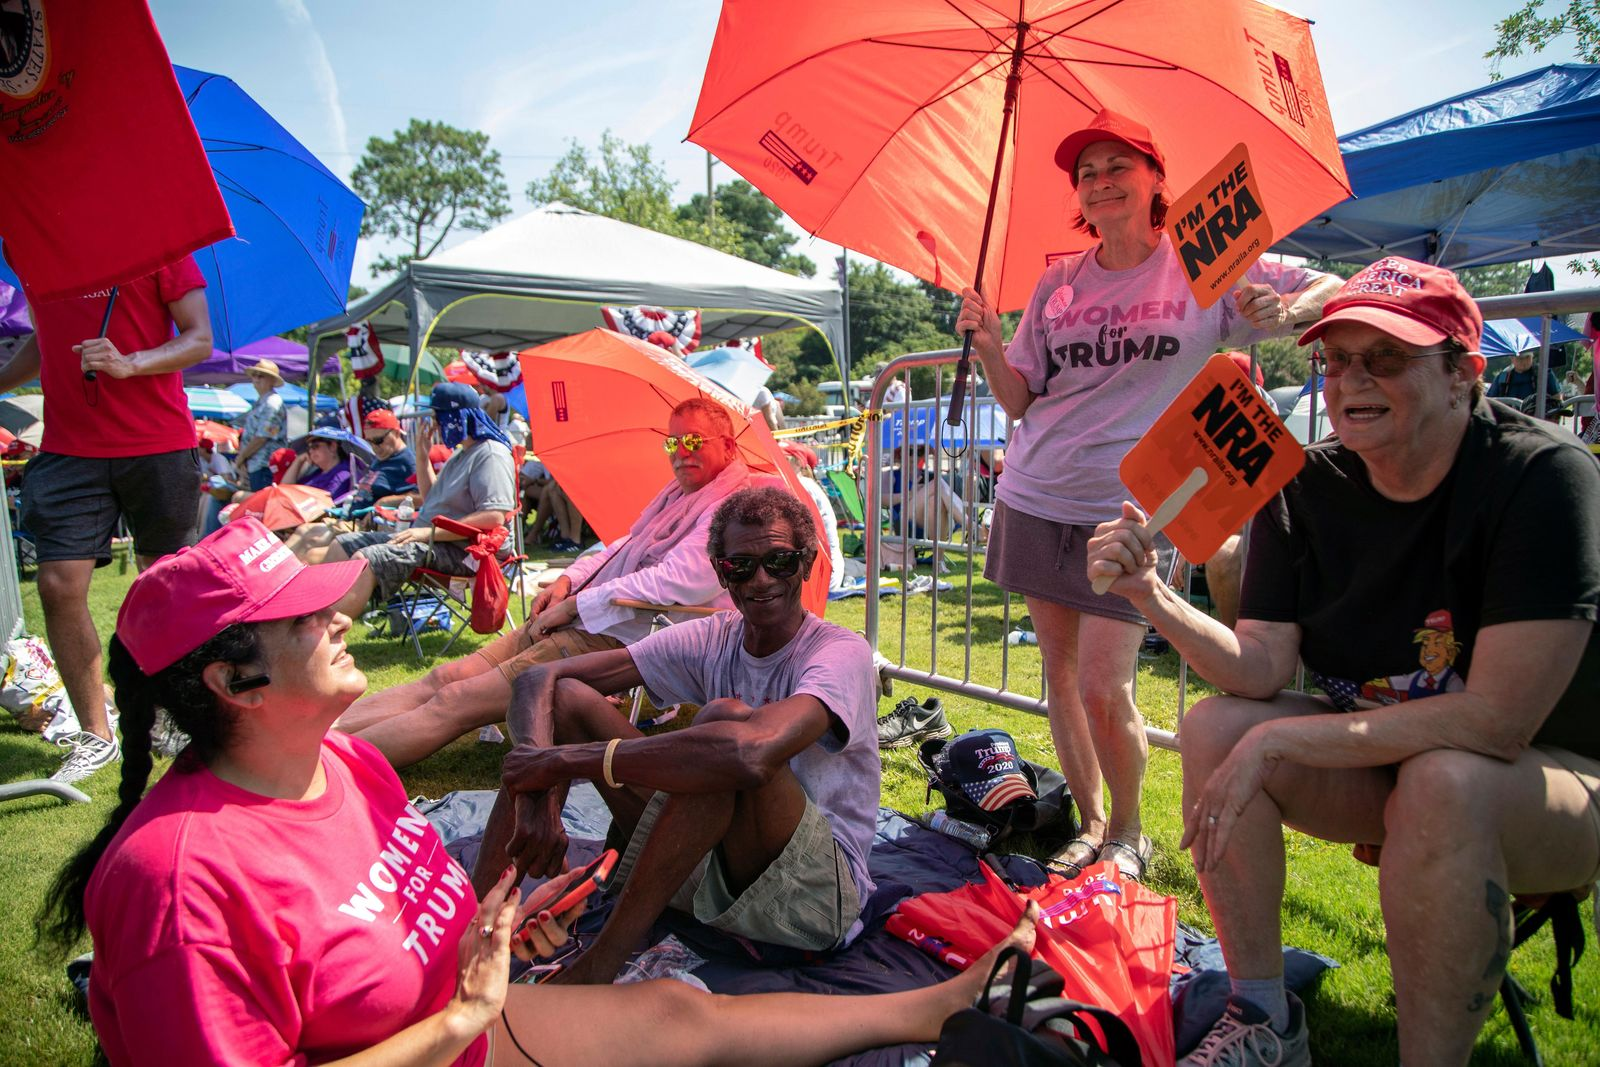 Foreground from left, Rosealinda Dorris, Michael Rountree, Maureen Fuster and Colleen Filo, all from Virginia Beach, Va., wait in line to see President Donald Trump, Wednesday morning, July 17, 2019 prior to a campaign rally at East Carolina University in Greenville, NC.(Travis Long/The News & Observer via AP)